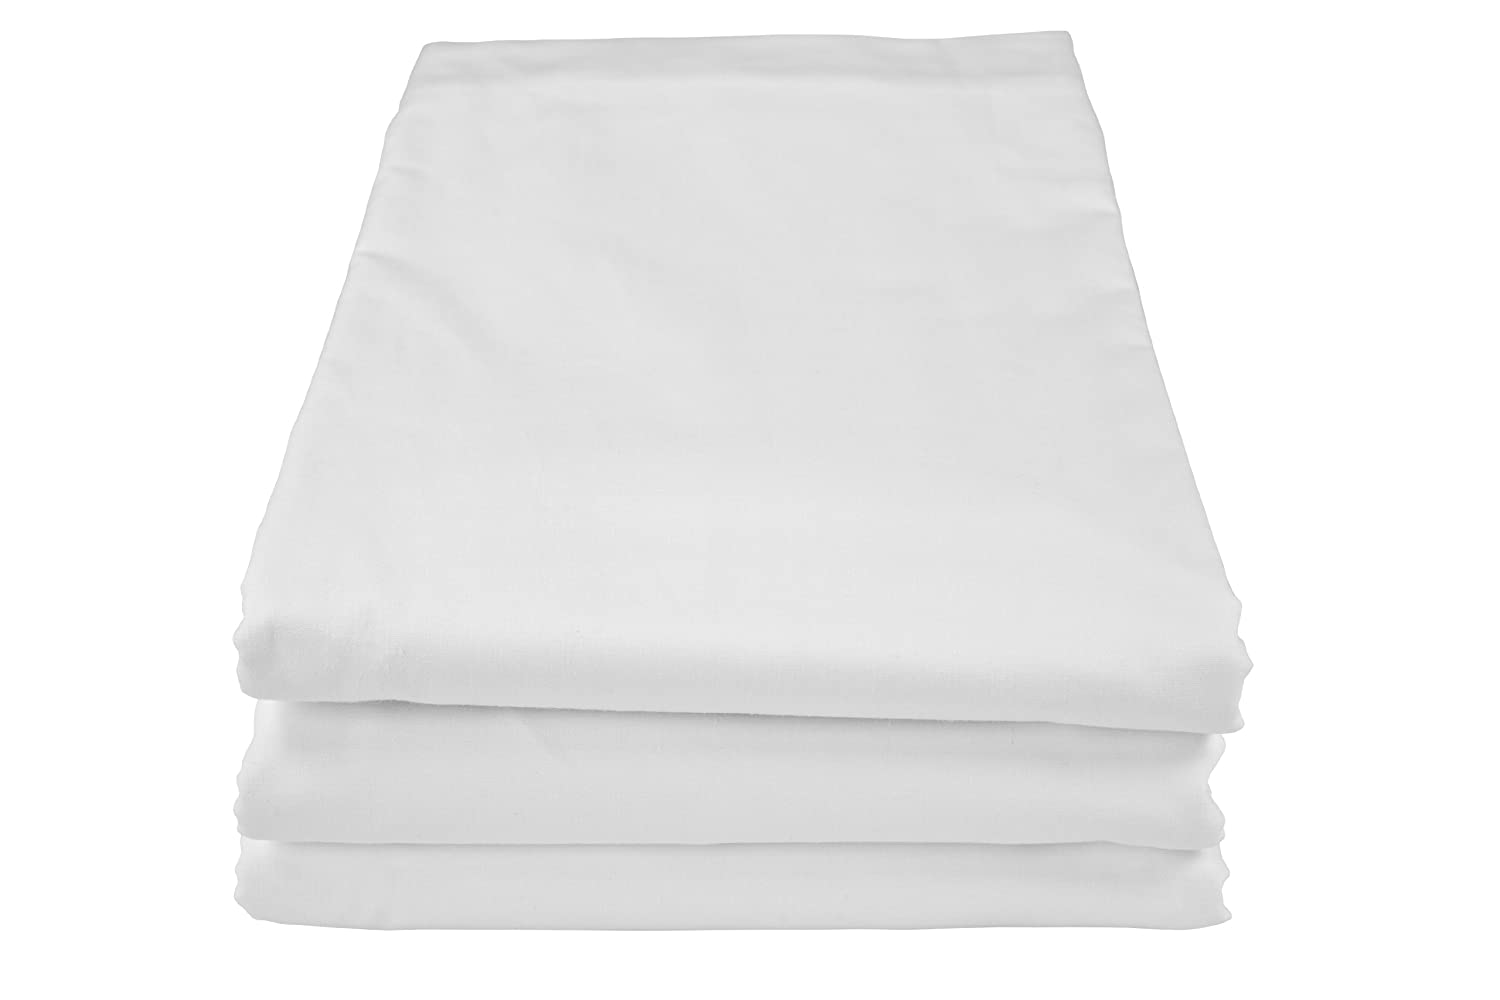 Riegel 108 by 110-Inch King Flat Sheet with 200 Thread Count, White,6-Pack